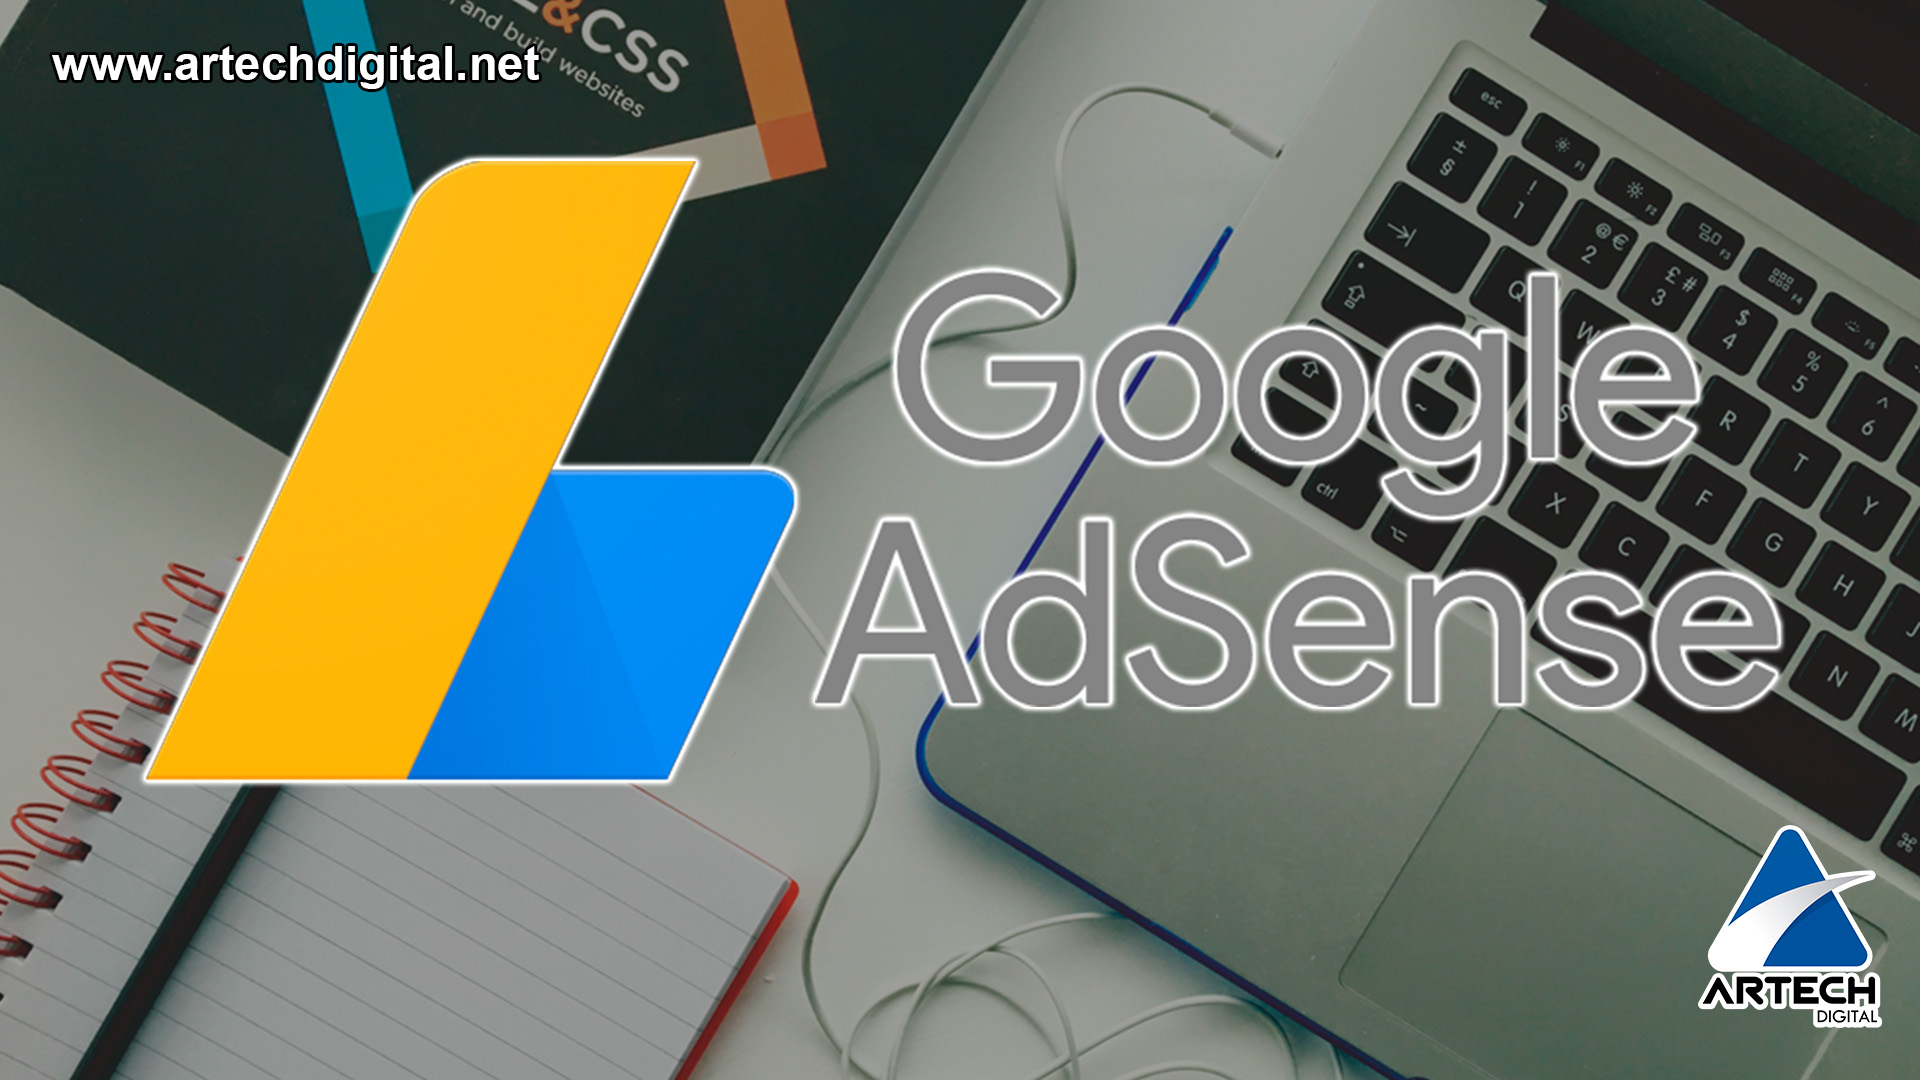 Google AdSense: The best tool to monetize your website